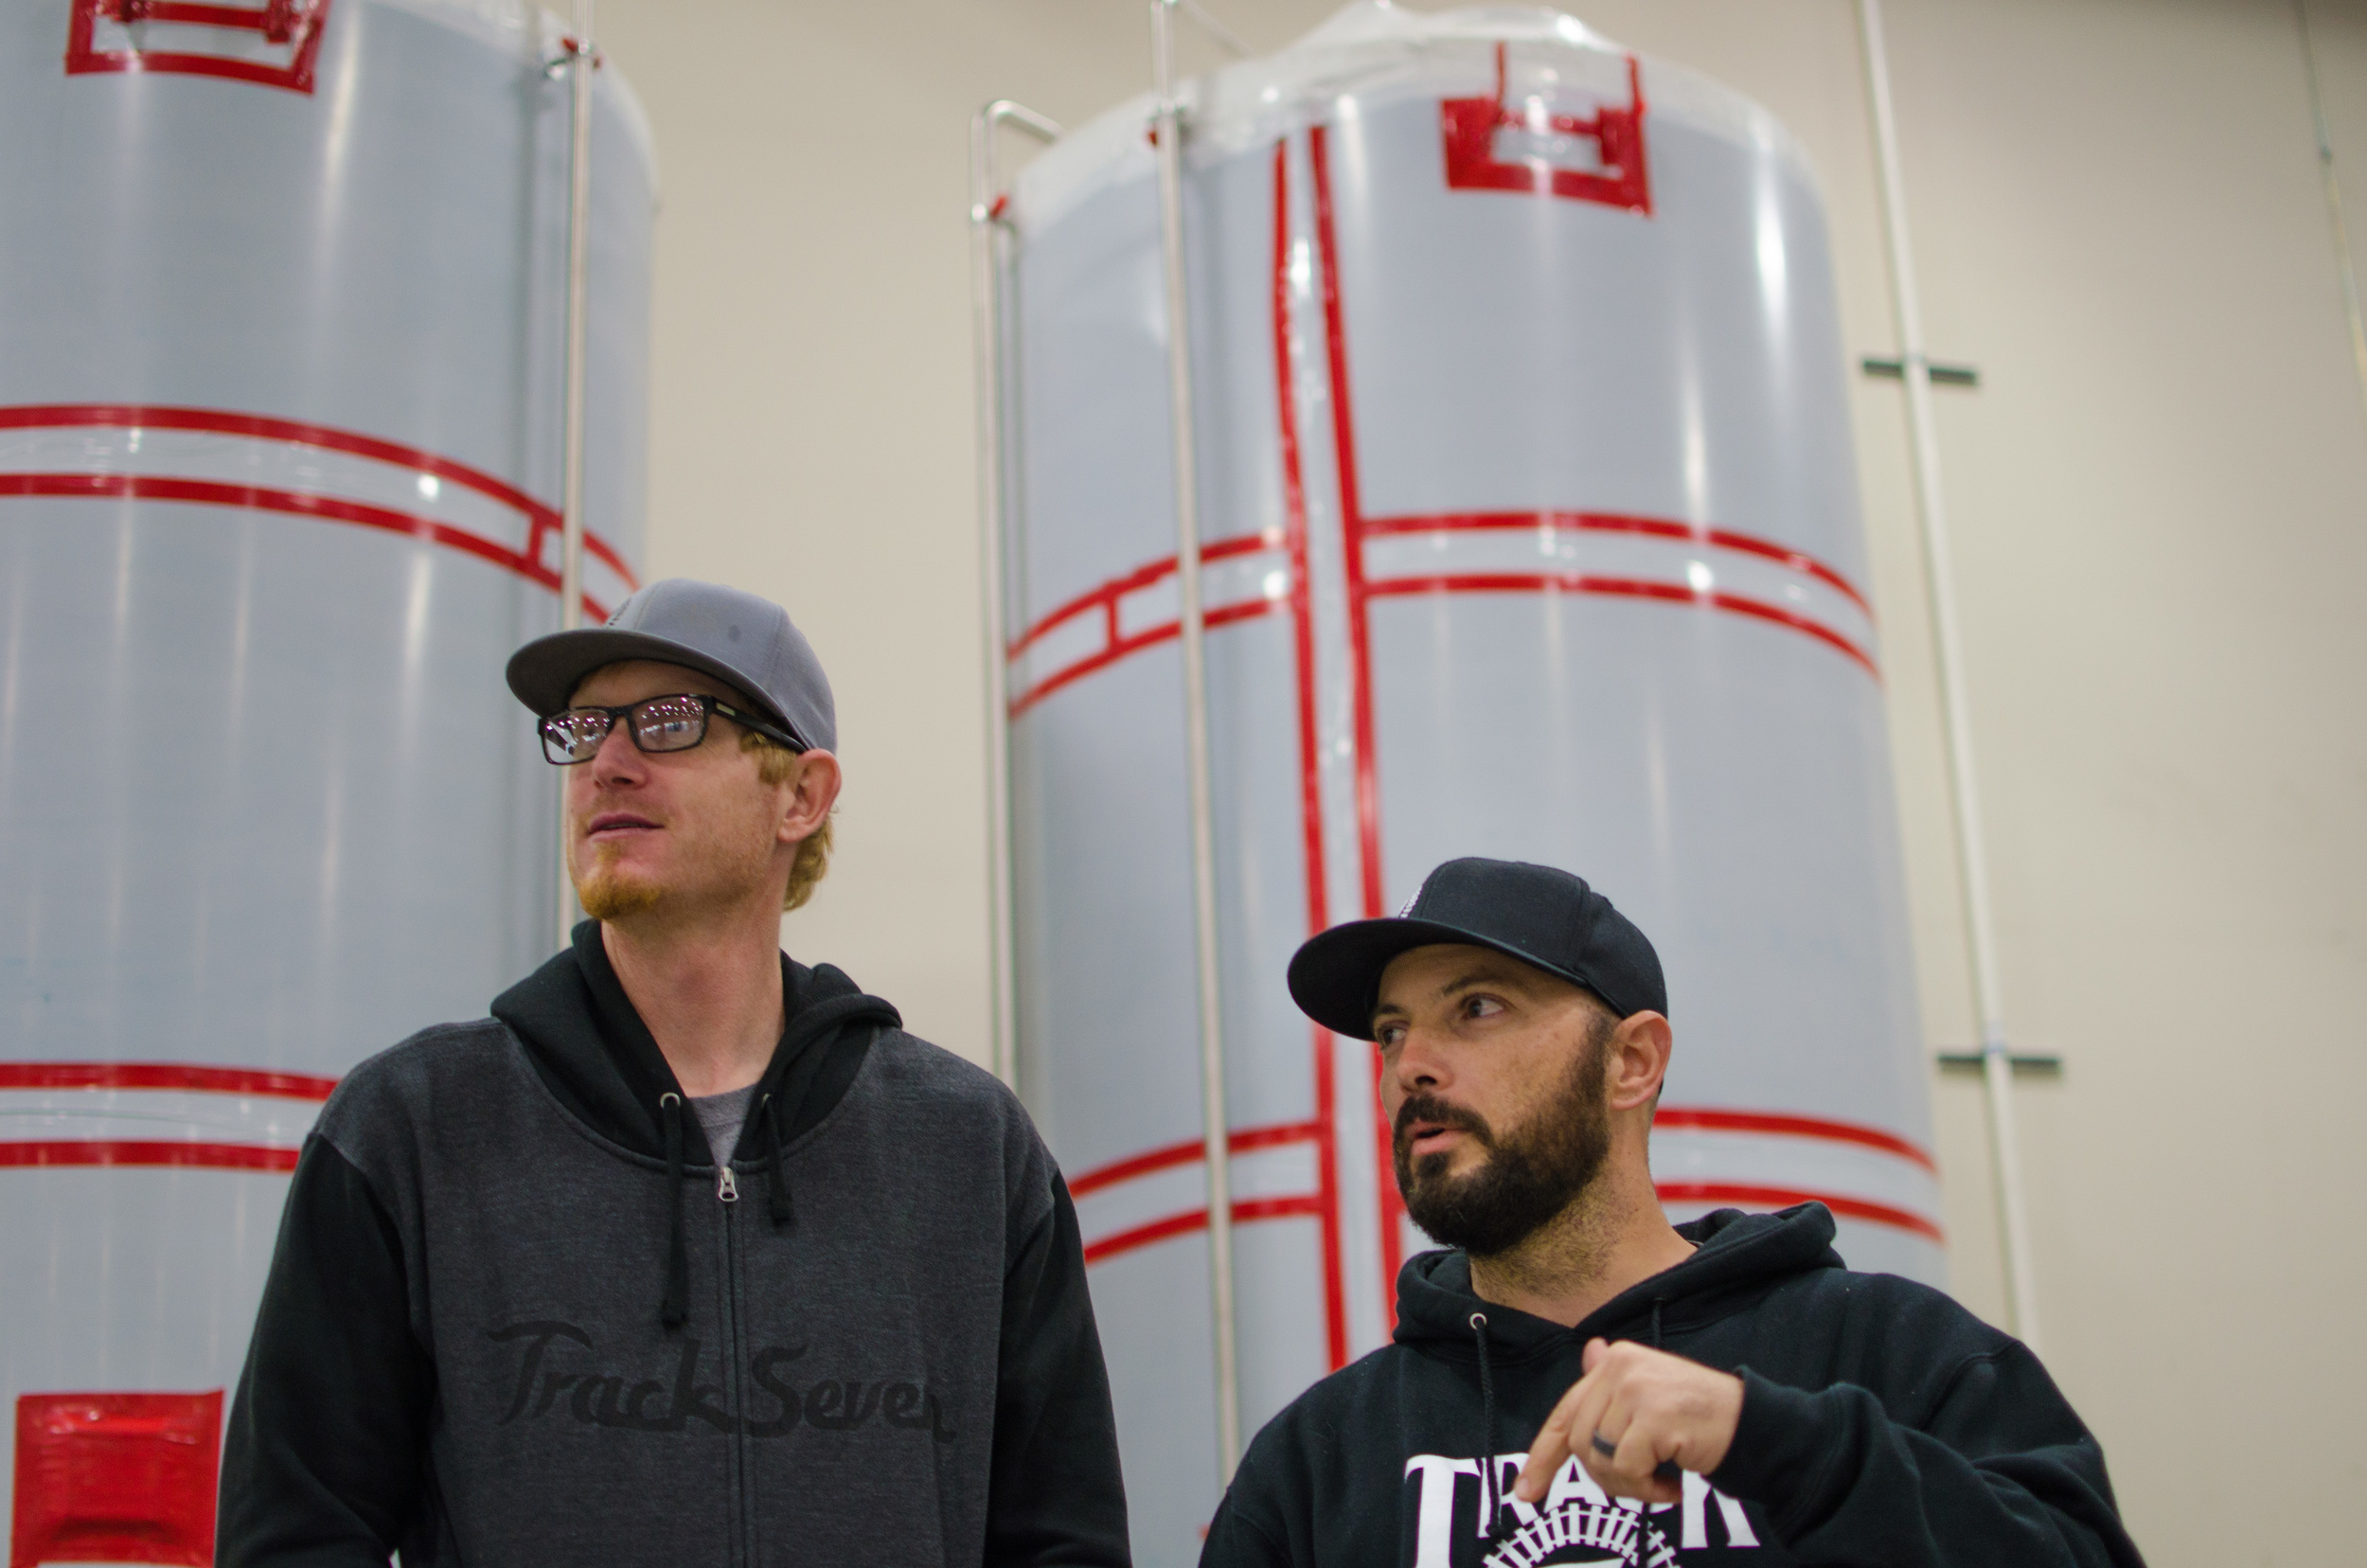 Geoff Scott (Left) and Ryan Graham (Right), Co-Owners of Track 7 Brewing